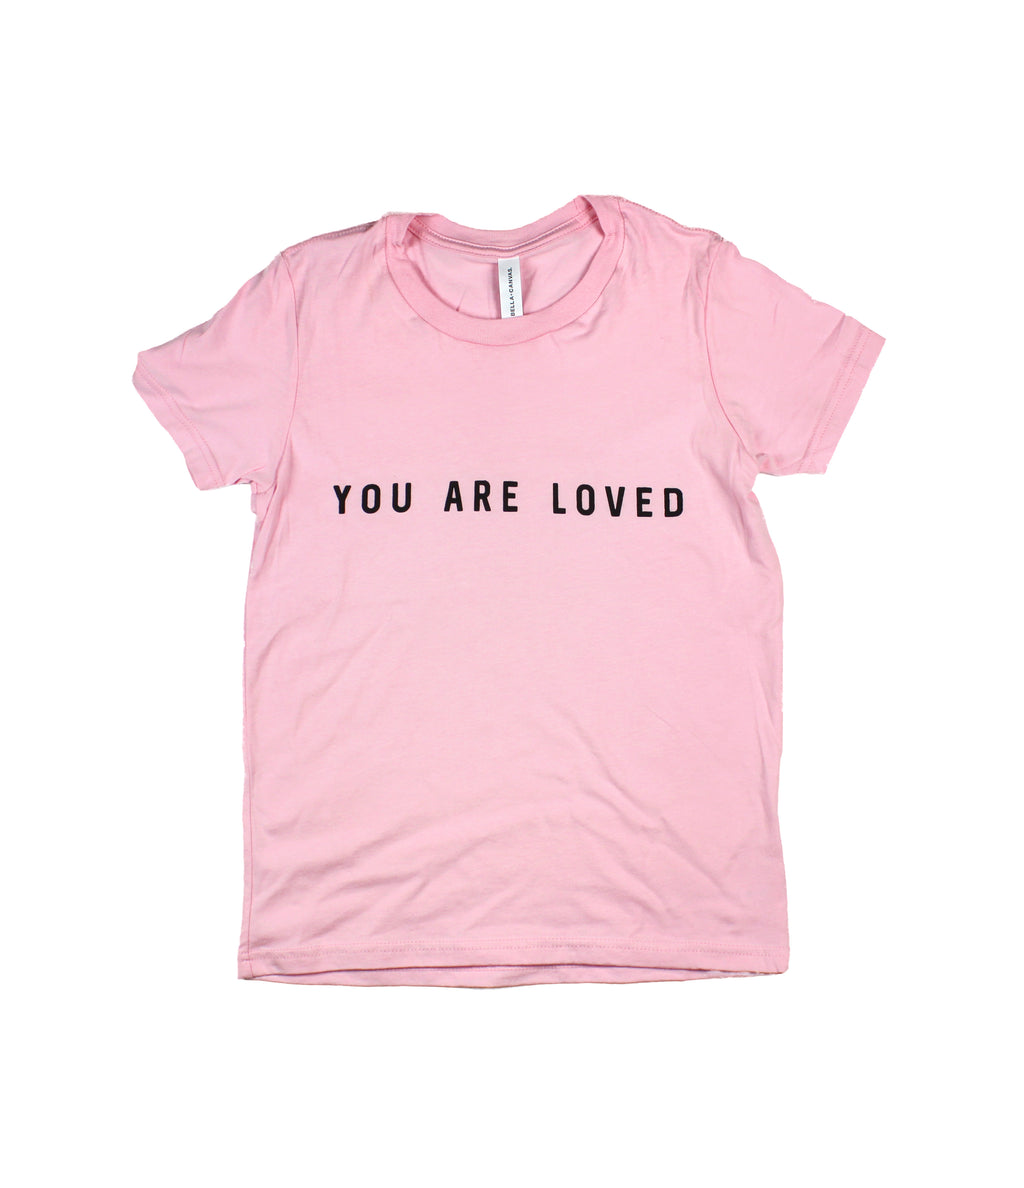 YOU ARE LOVED PINK YOUTH TEE